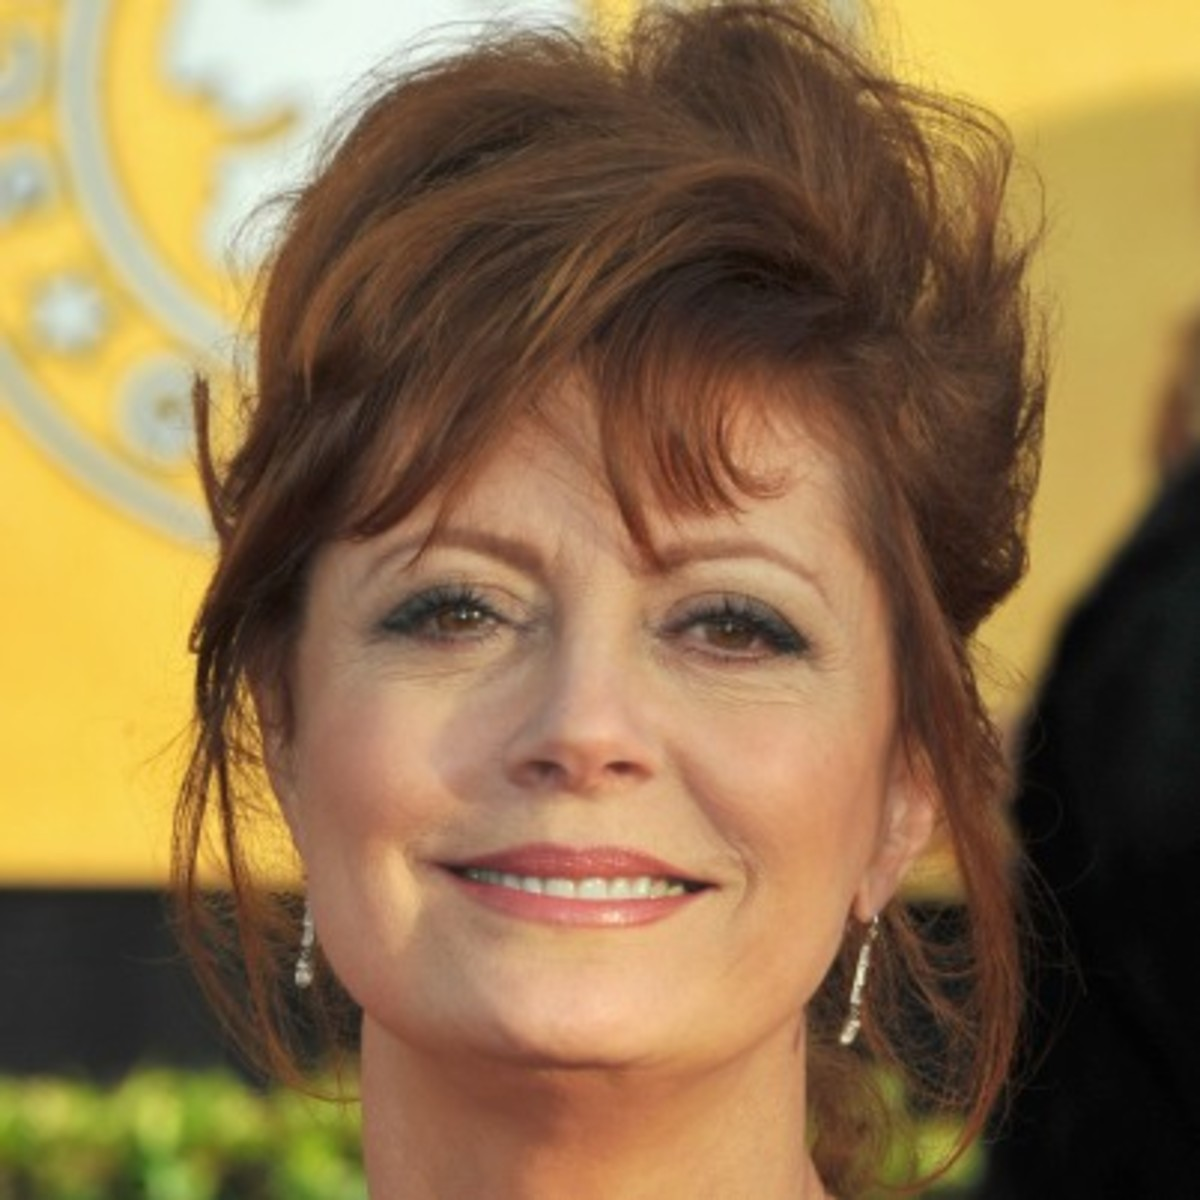 Images Susan Sarandon nudes (49 foto and video), Topless, Cleavage, Boobs, braless 2020